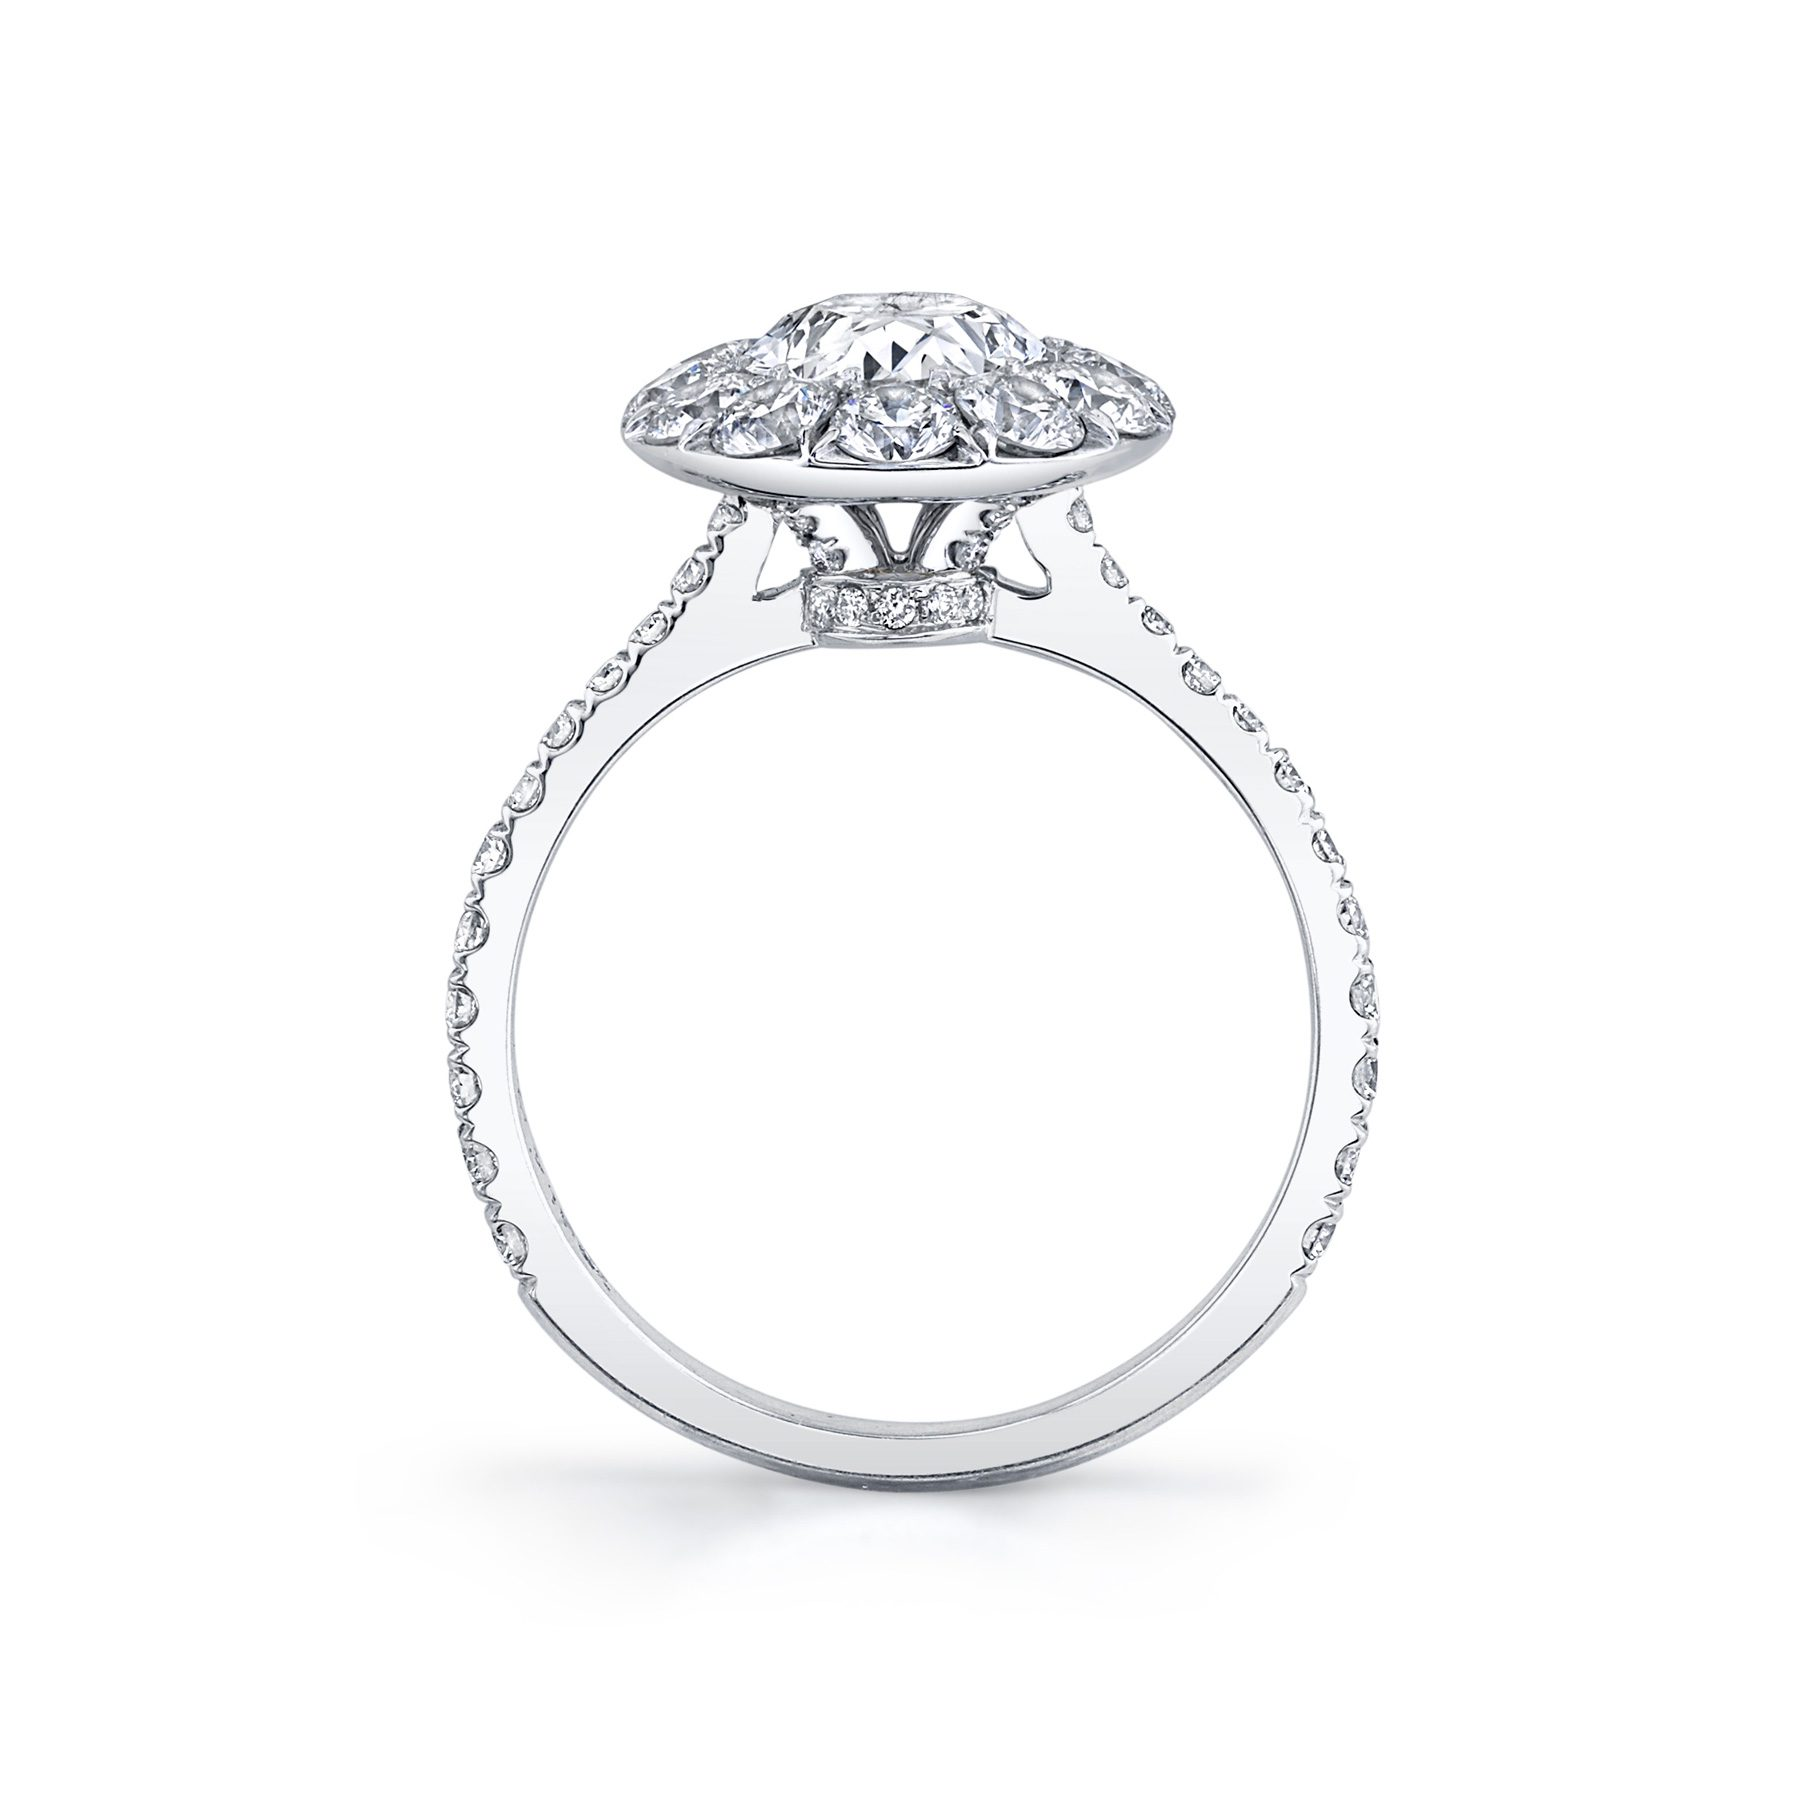 Eloise Oval Seamless Solitaire® Engagement Ring with diamond pavé in 18k White Gold Standing View by Oui by Jean Dousset